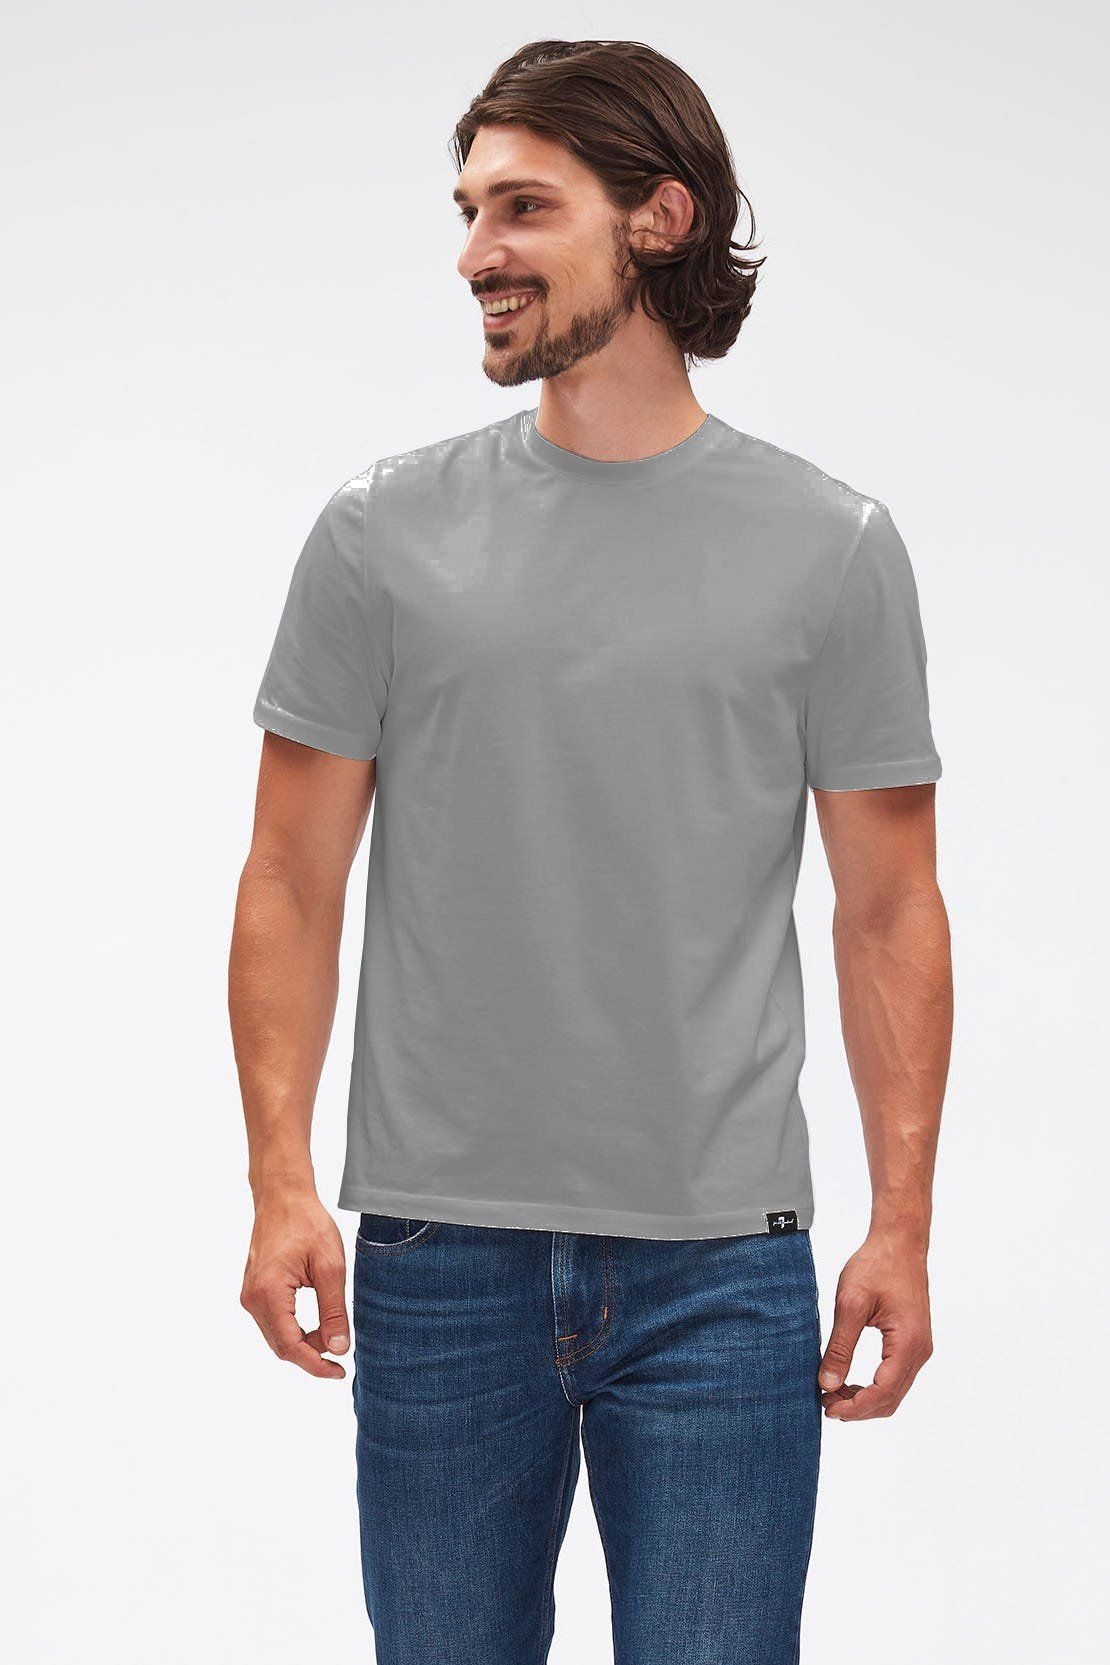 7 For All Mankind - Grey Luxe Performance T-shirt JSIM2370GM L